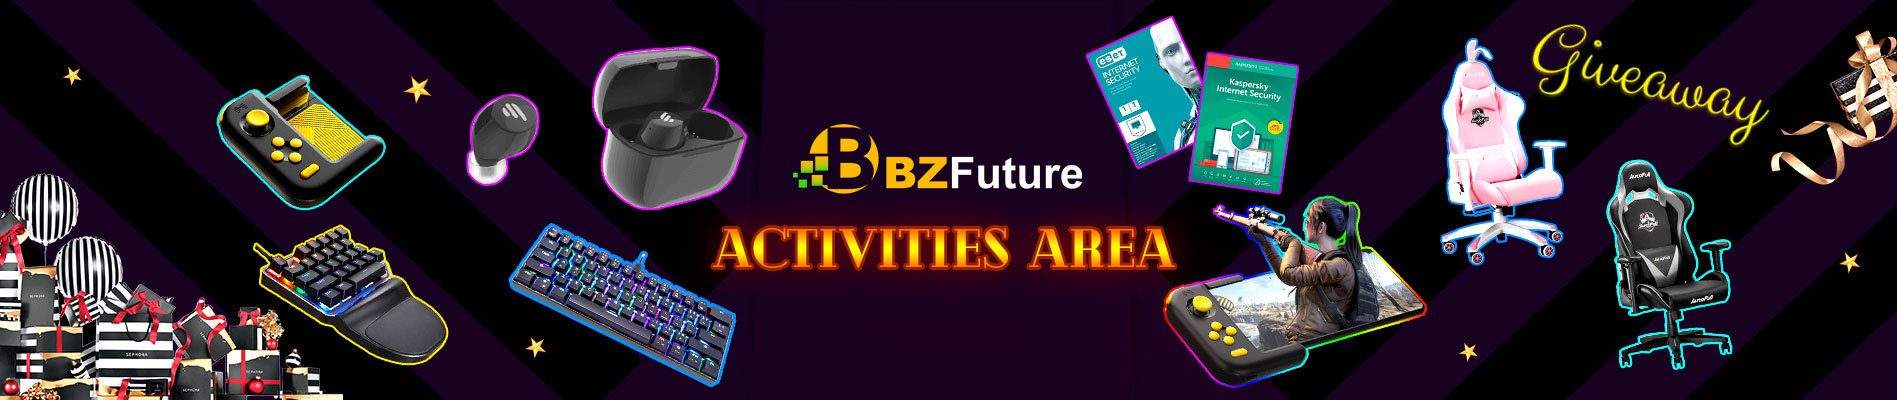 bzfuture giveaway activity